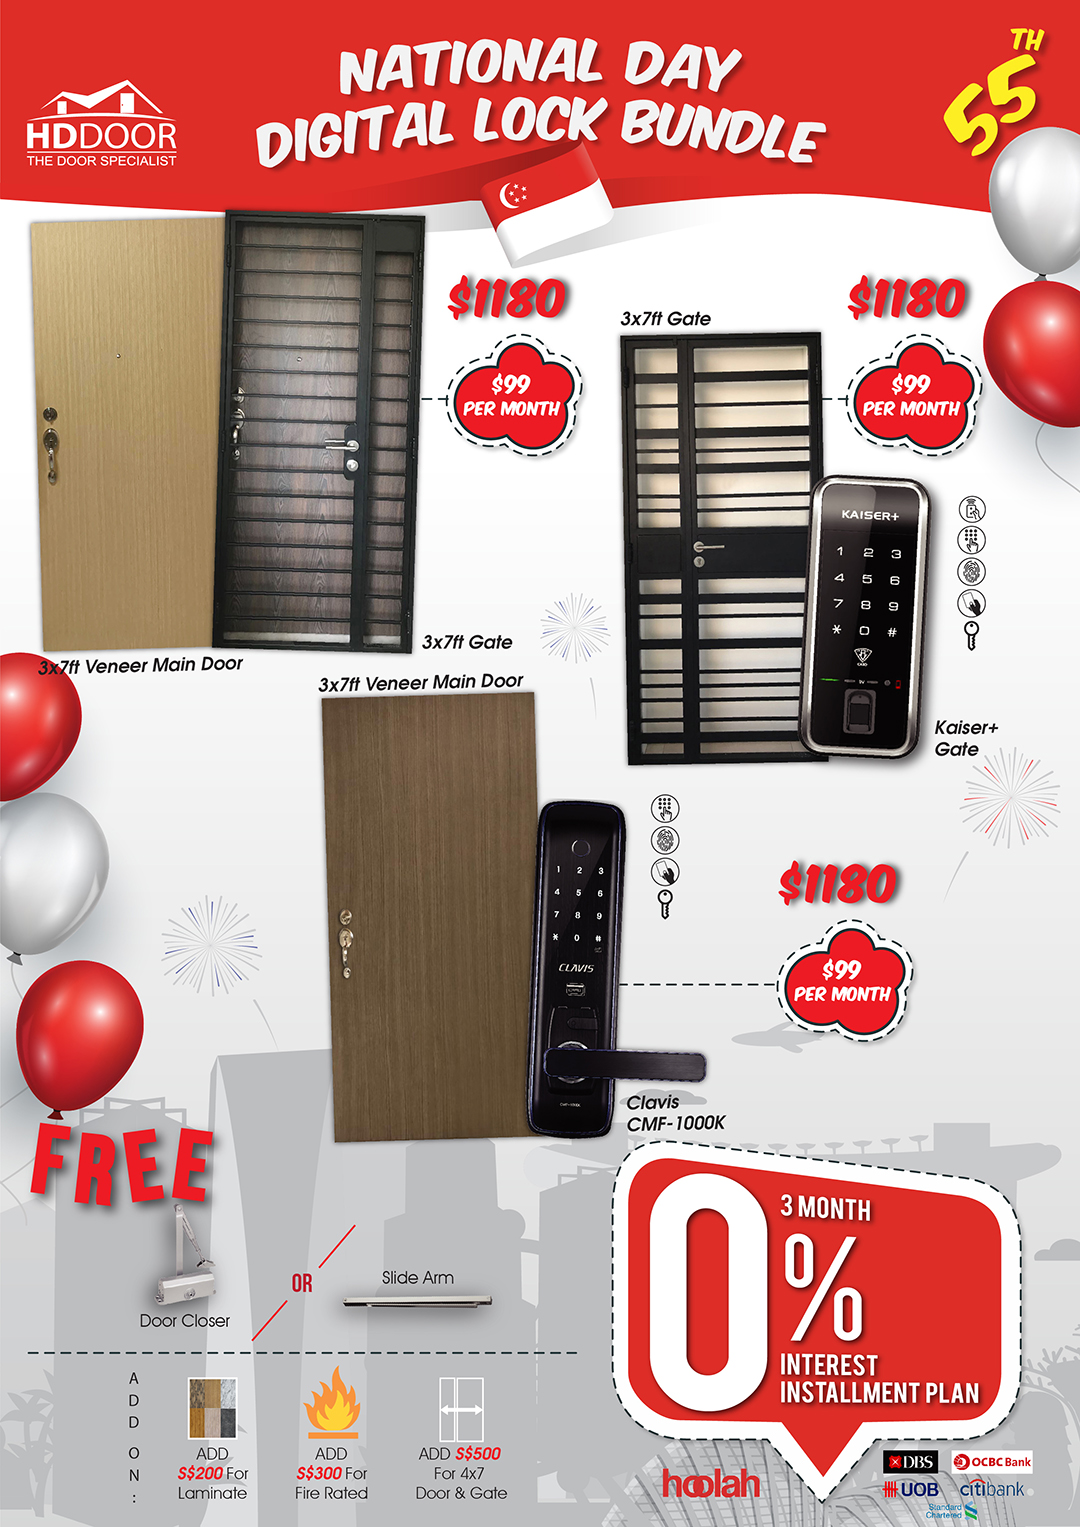 National day special door gate digital lock bundle promotion sale 2020